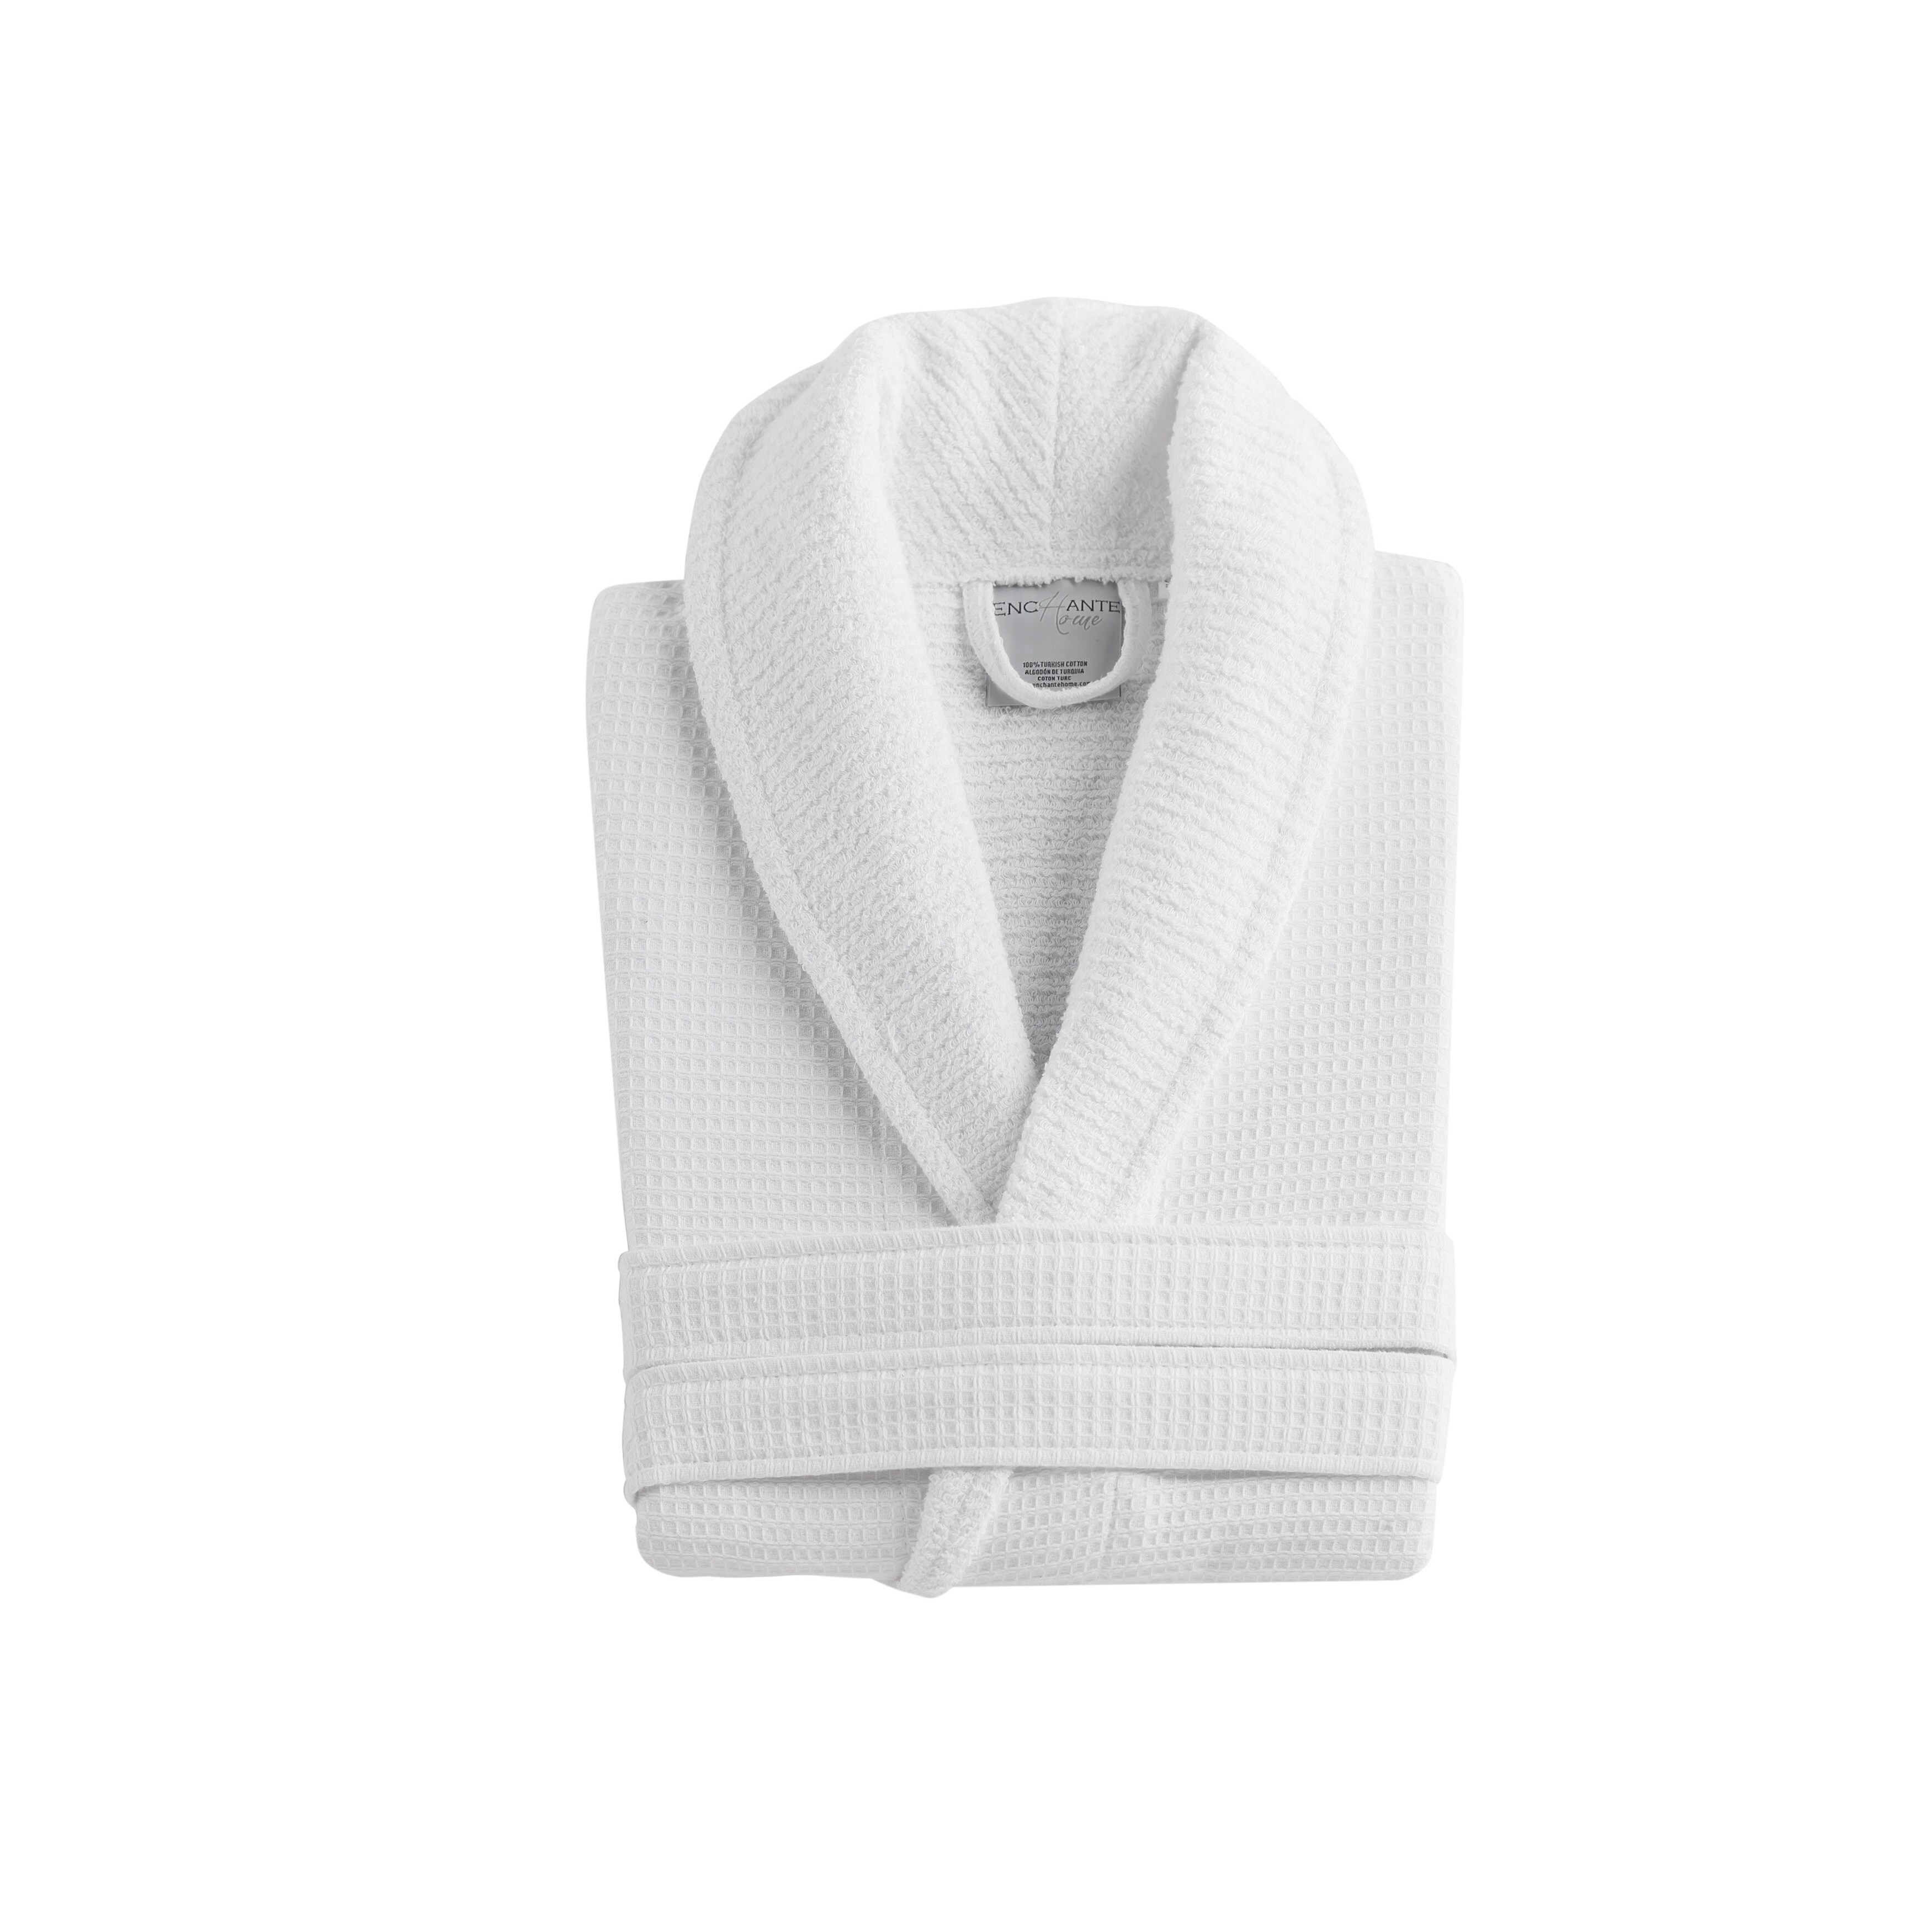 80645d6132 Shop Luxurious Waffle Terry Turkish Cotton Bath Robe - On Sale - Free  Shipping Today - Overstock - 12343797